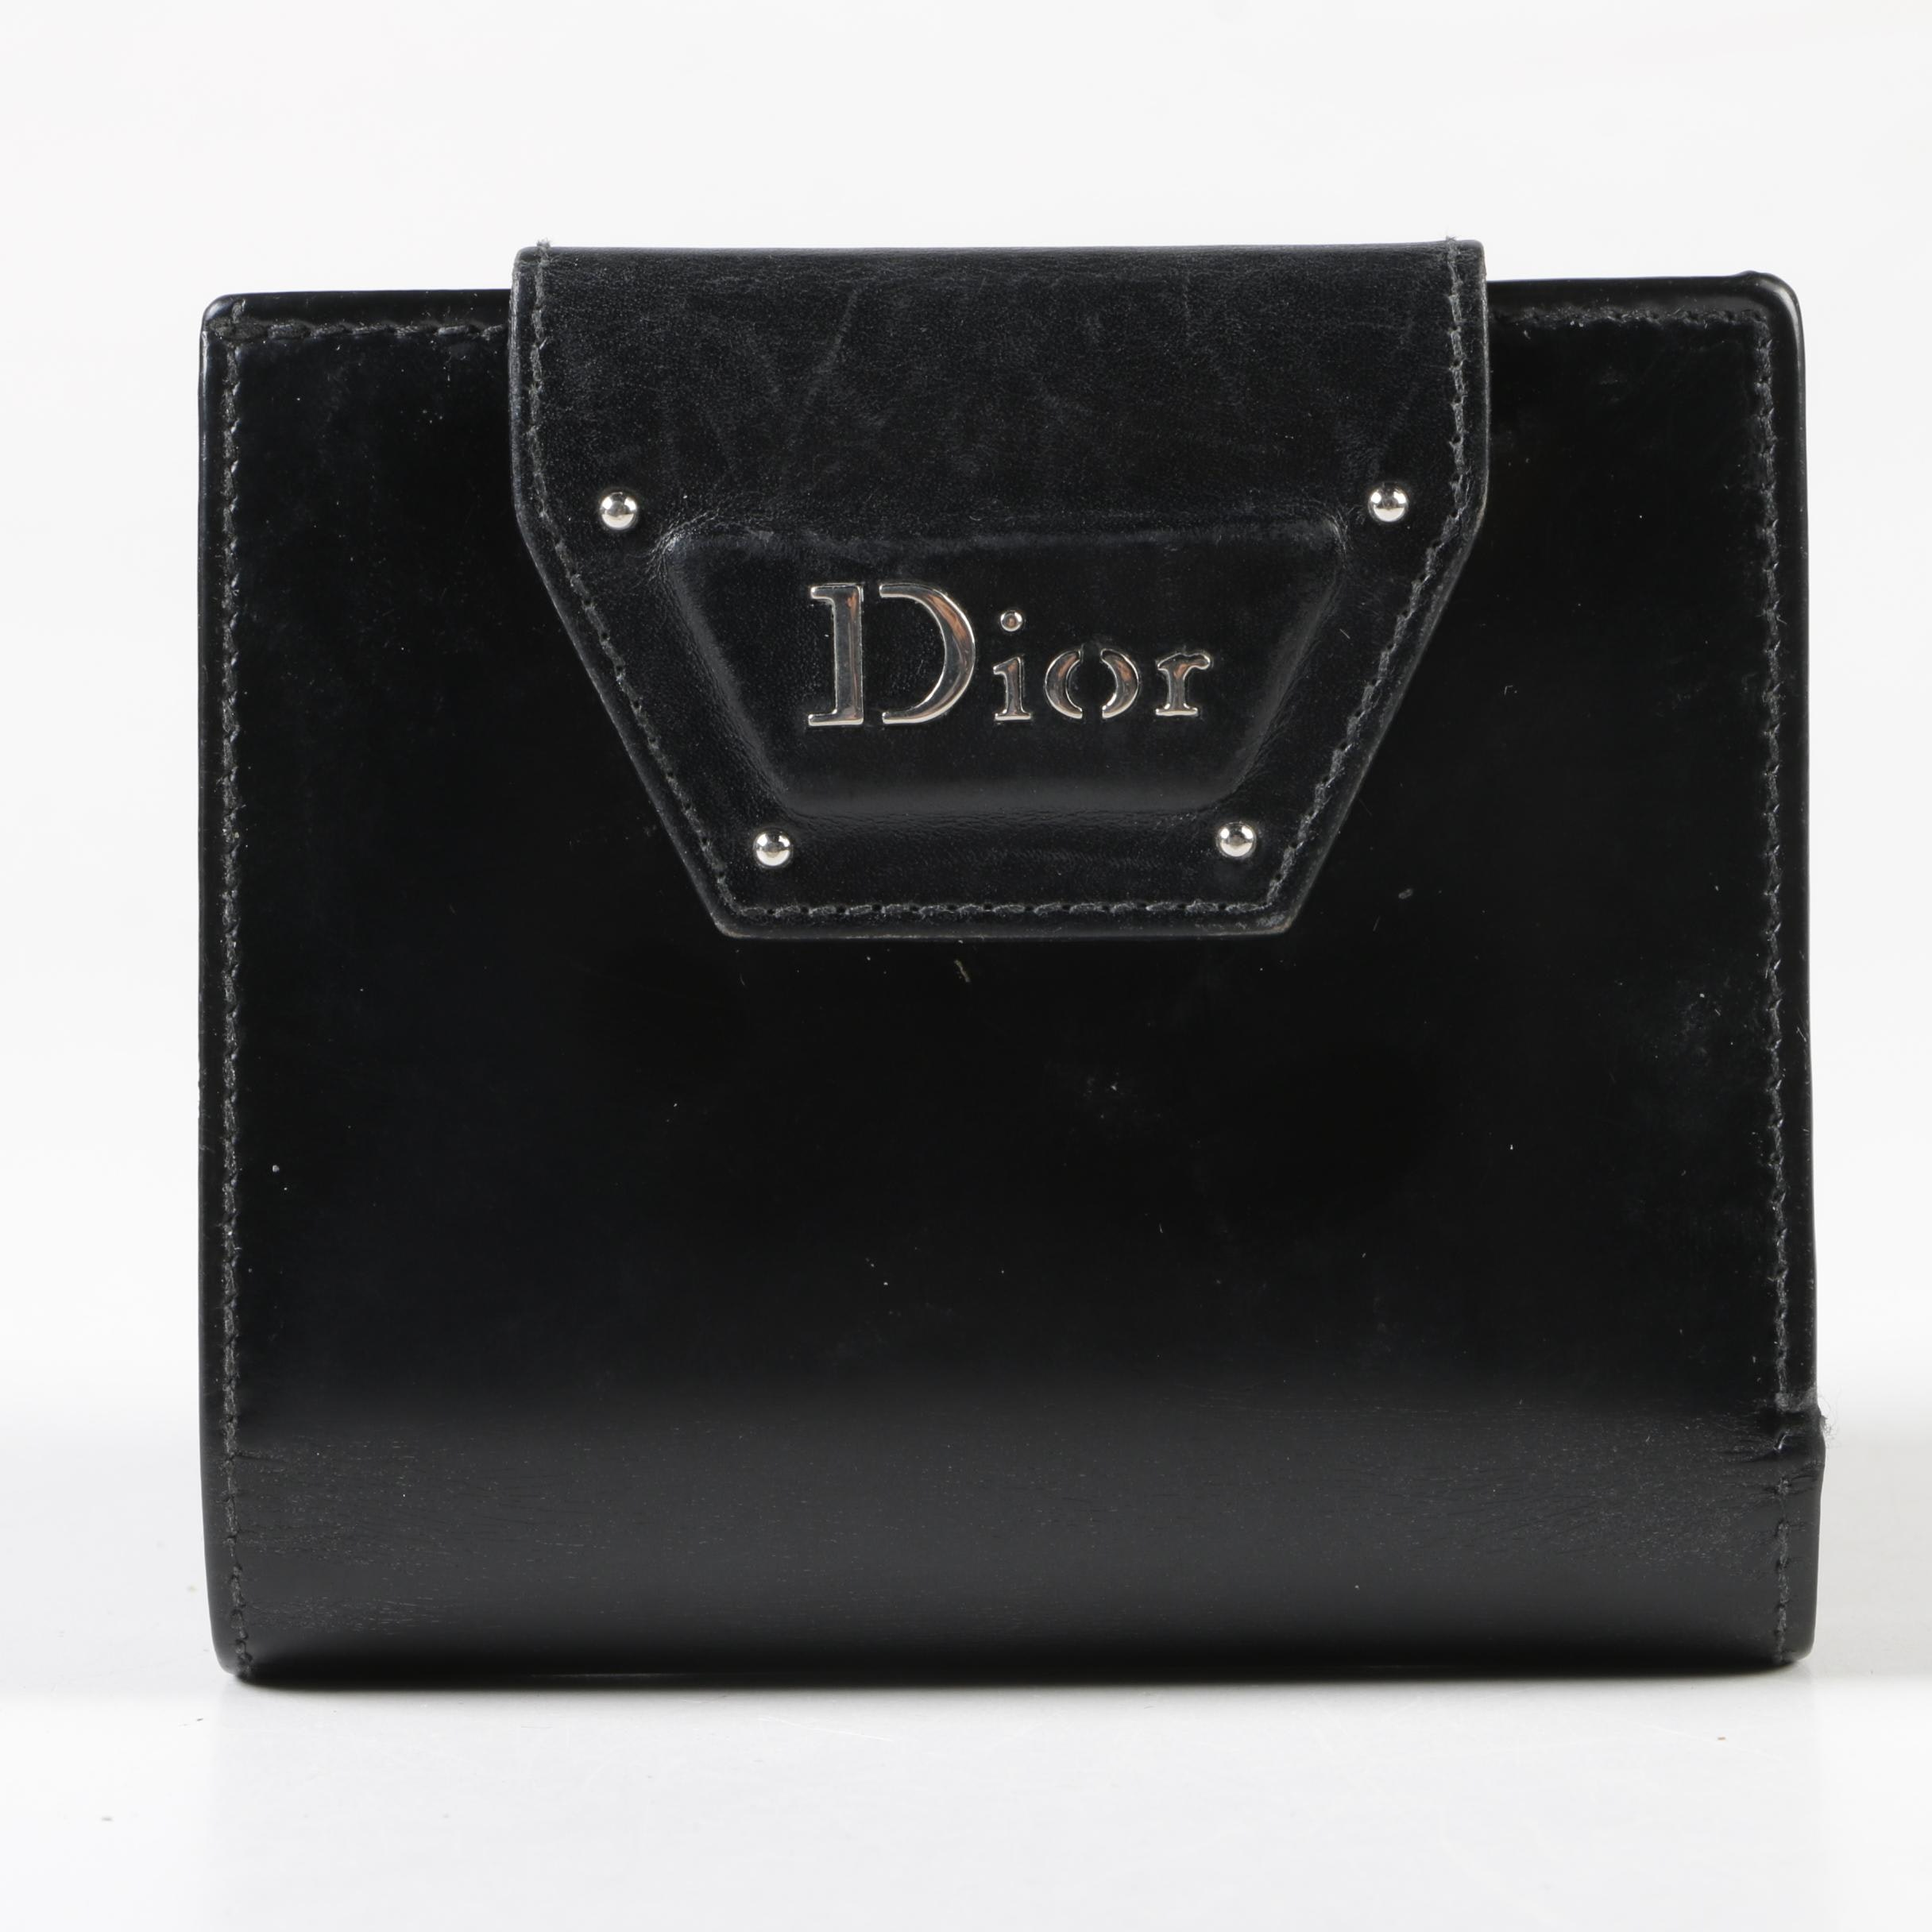 Christian Dior Paris Black Leather Bifold Wallet with Coin Pocket